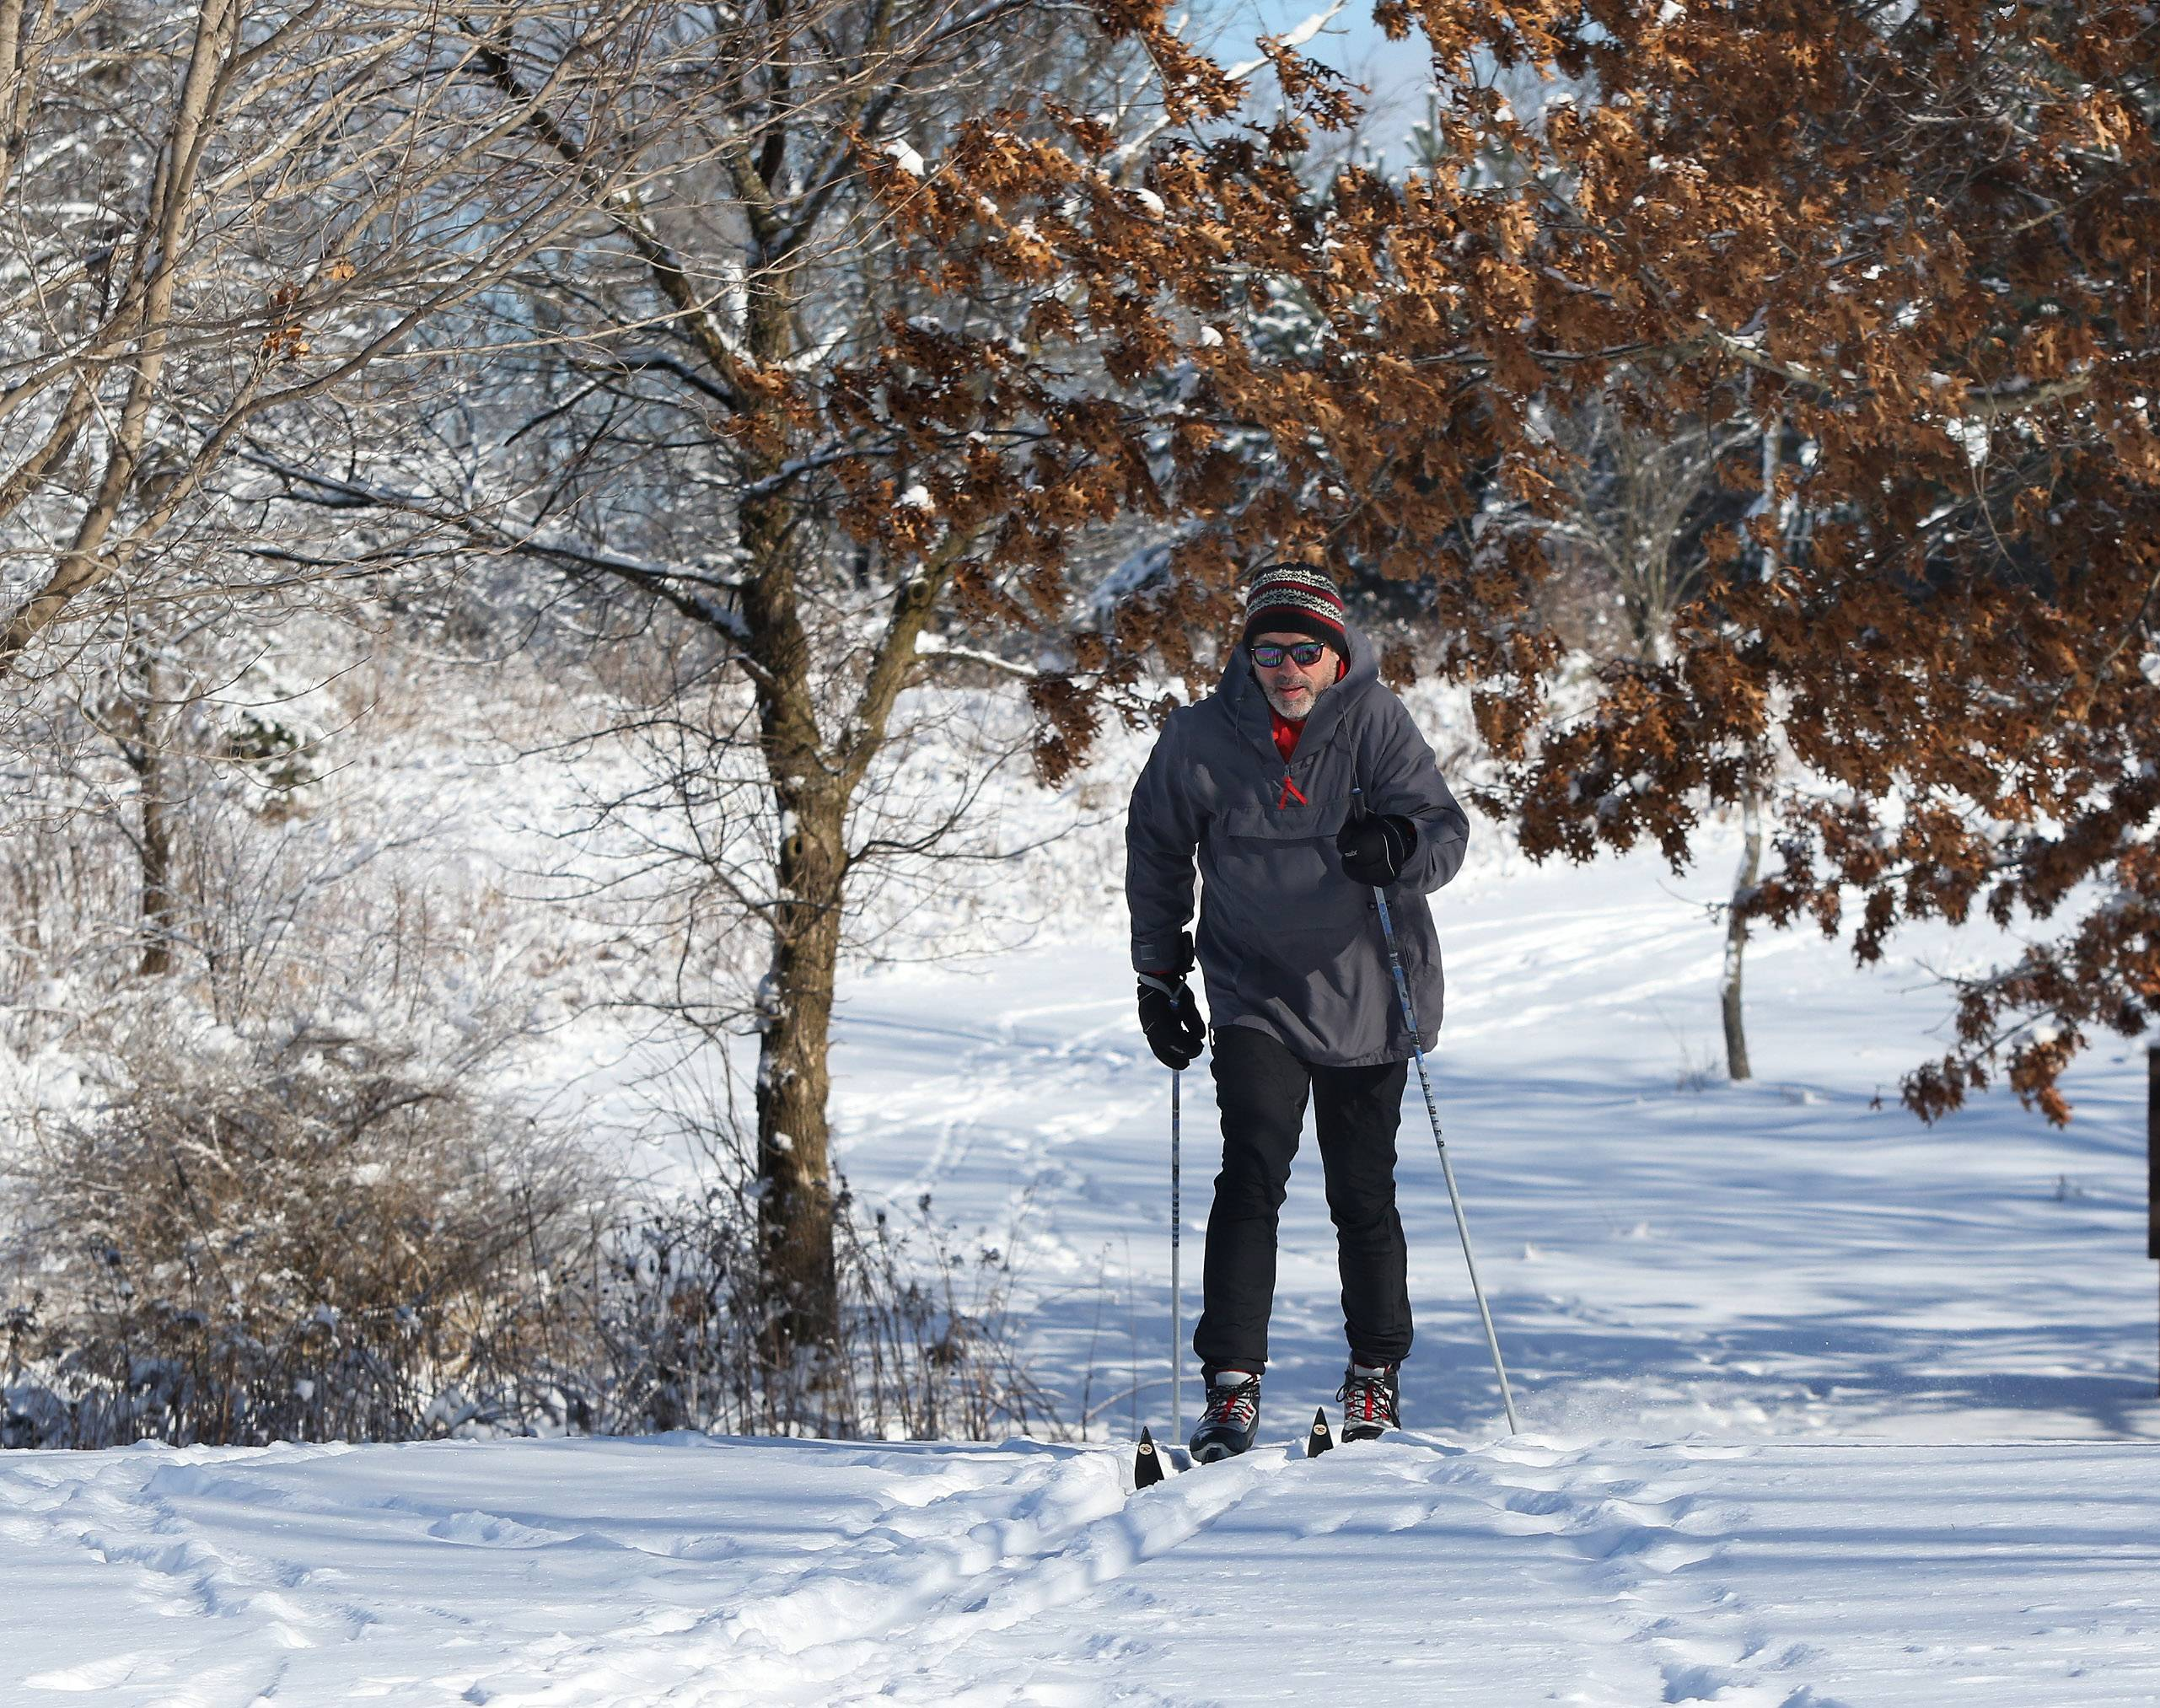 Garry Steffen of Lake Villa enjoys cross-country skiing during Winterfest at the Volo Bog State Natural Area on Sunday. The winter event featured tours of the bog, children's crafts, live music and a snow sculpting contest.